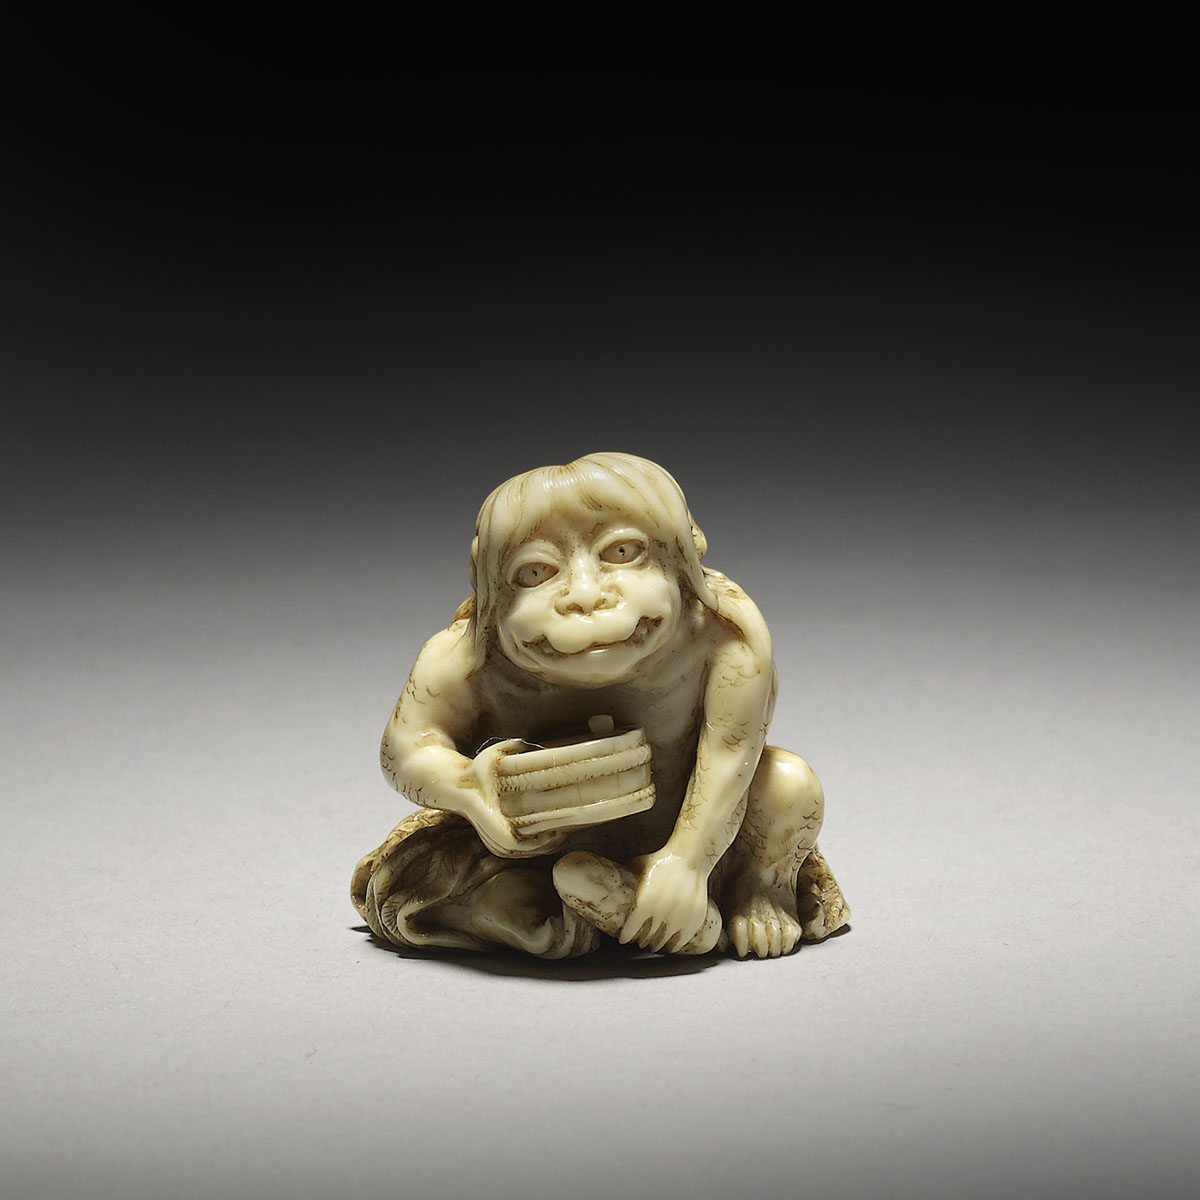 Ivory netsuke of a seated Kappa, Ikkosai, MR3121_v1